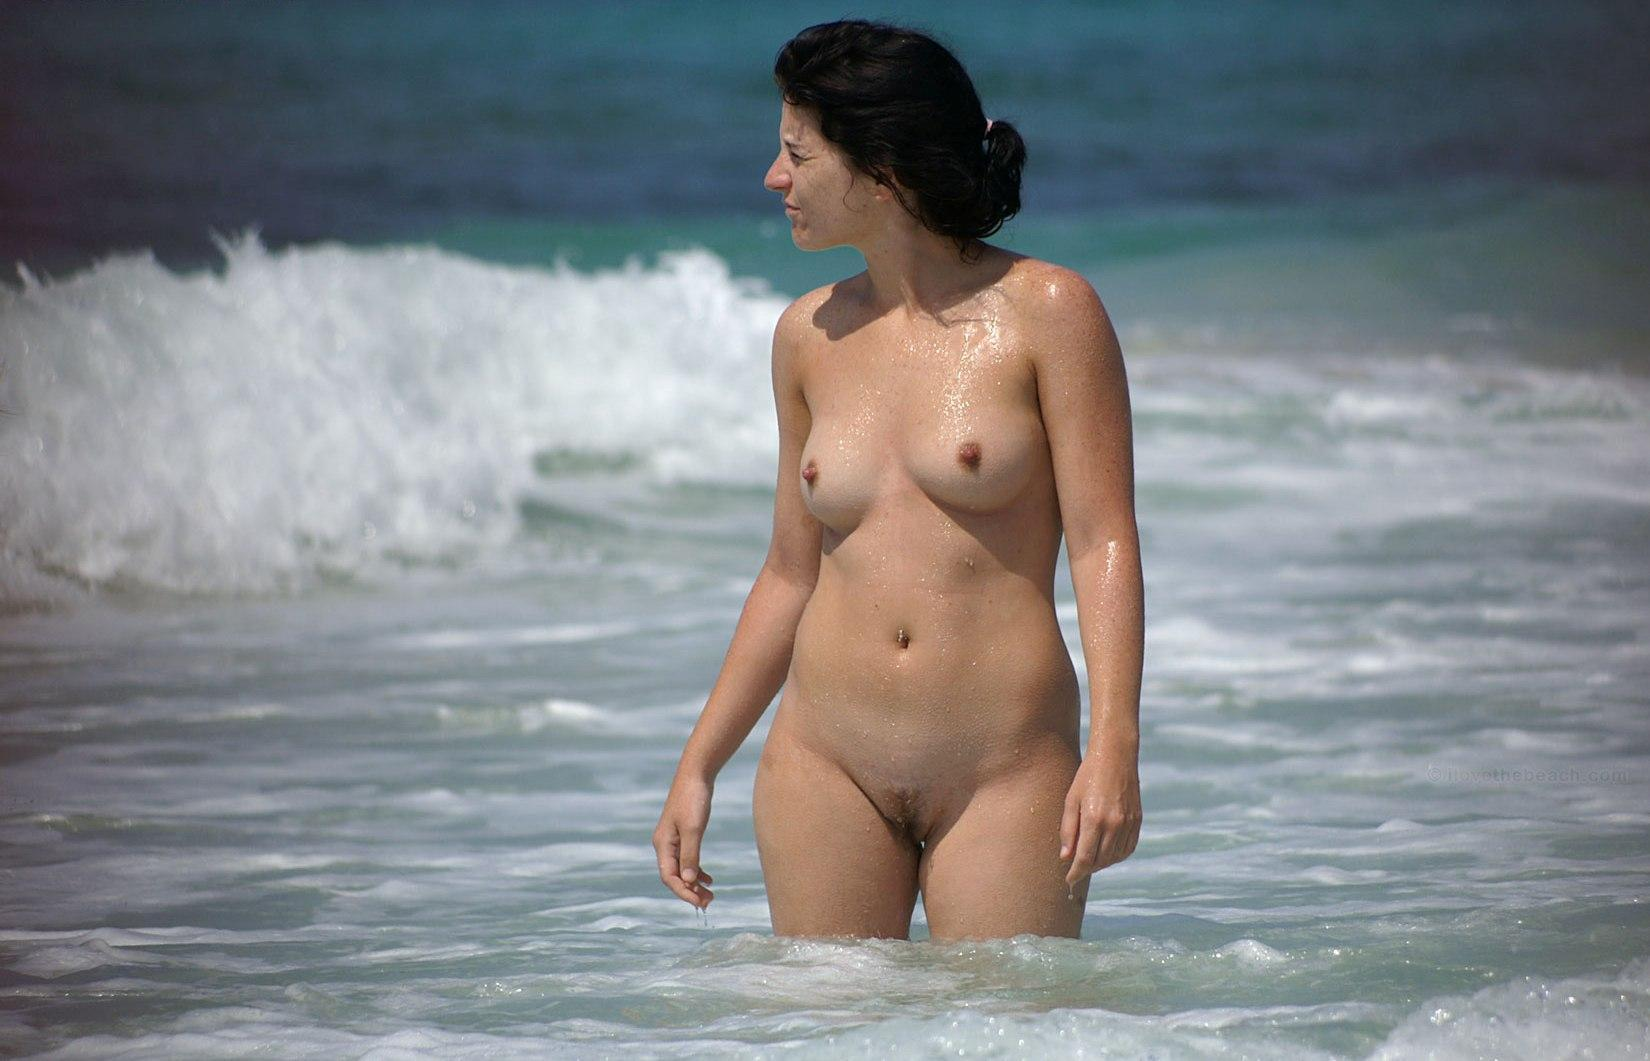 Hot babe in the tremendous ocean waters